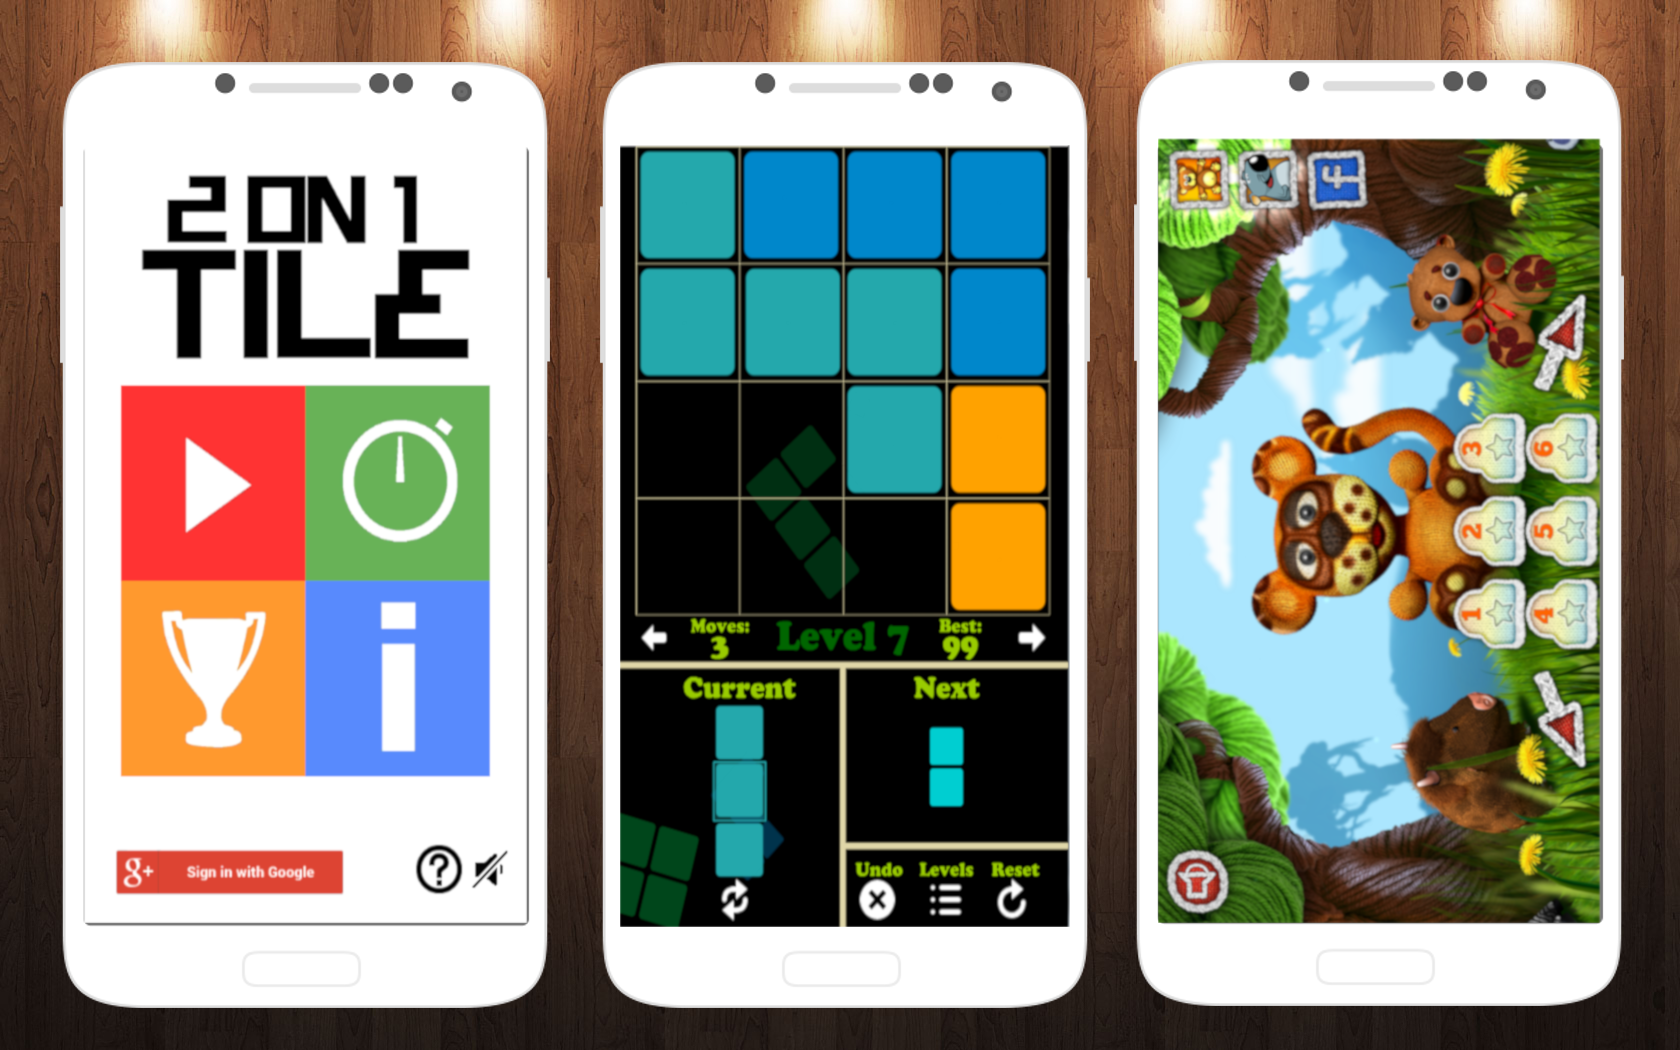 Умные игры для Android: Blocks, 2 On 1 Tile и The Woolies